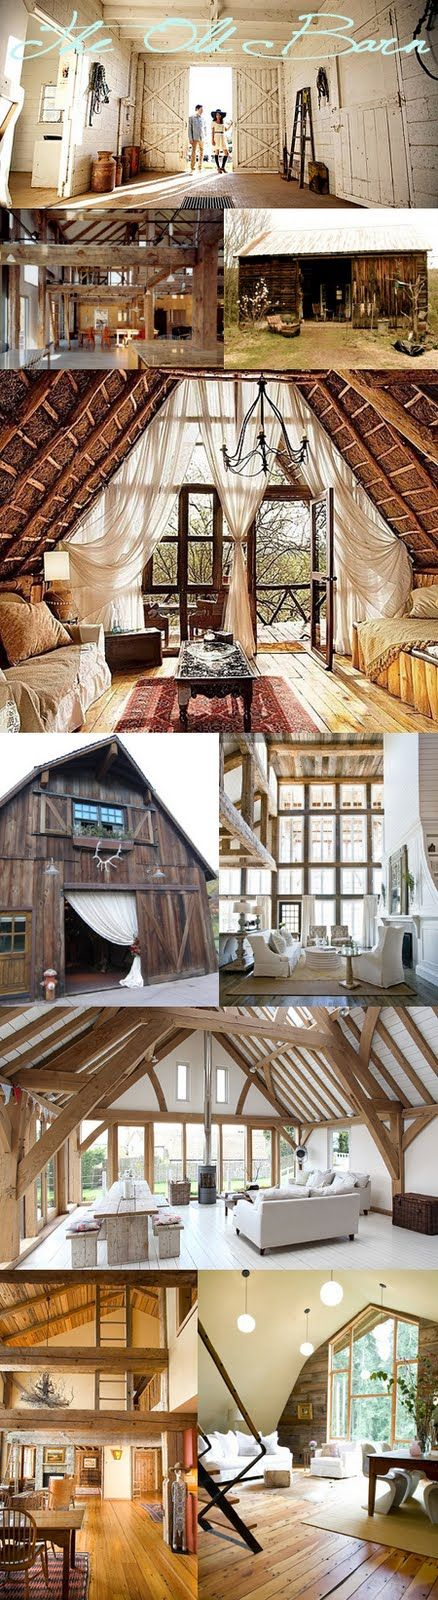 30 best horse barns with living quarters images on for Converting a pole barn into living space